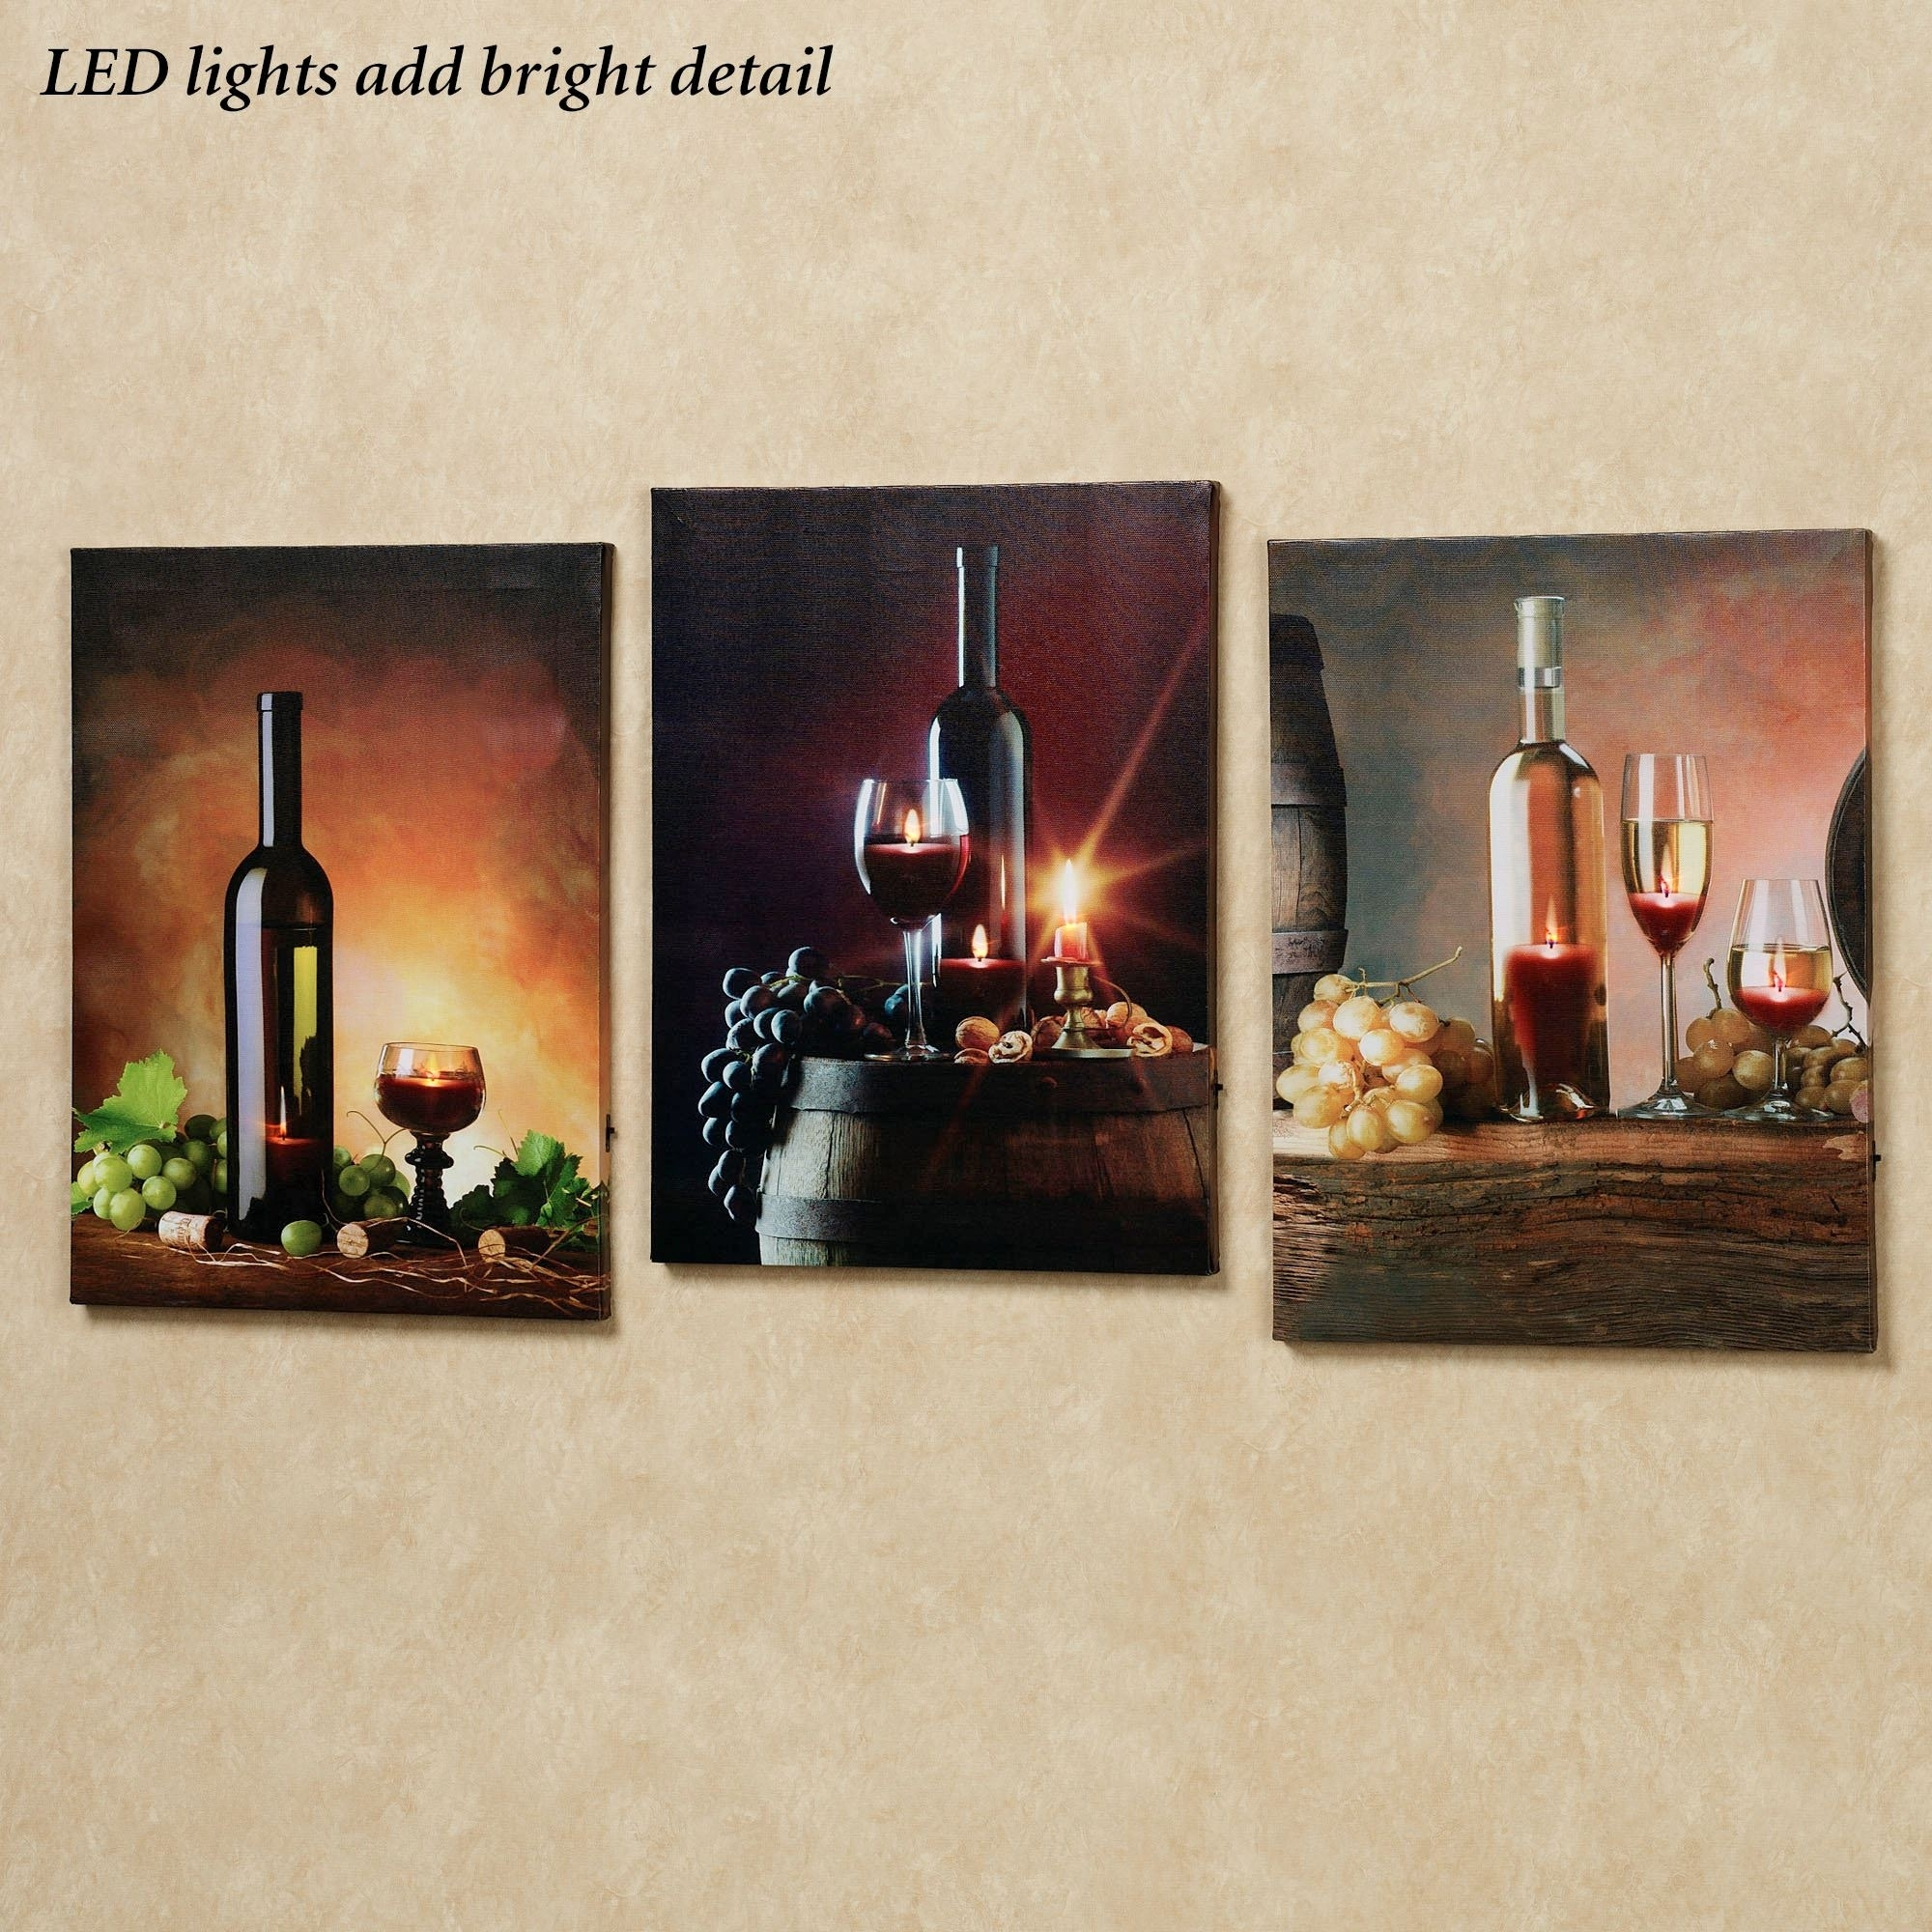 Wall Art Designs: Wine Wall Art Home Art Themed Canvas Art Lirac Pertaining To Best And Newest Lighted Canvas Wall Art (View 3 of 15)